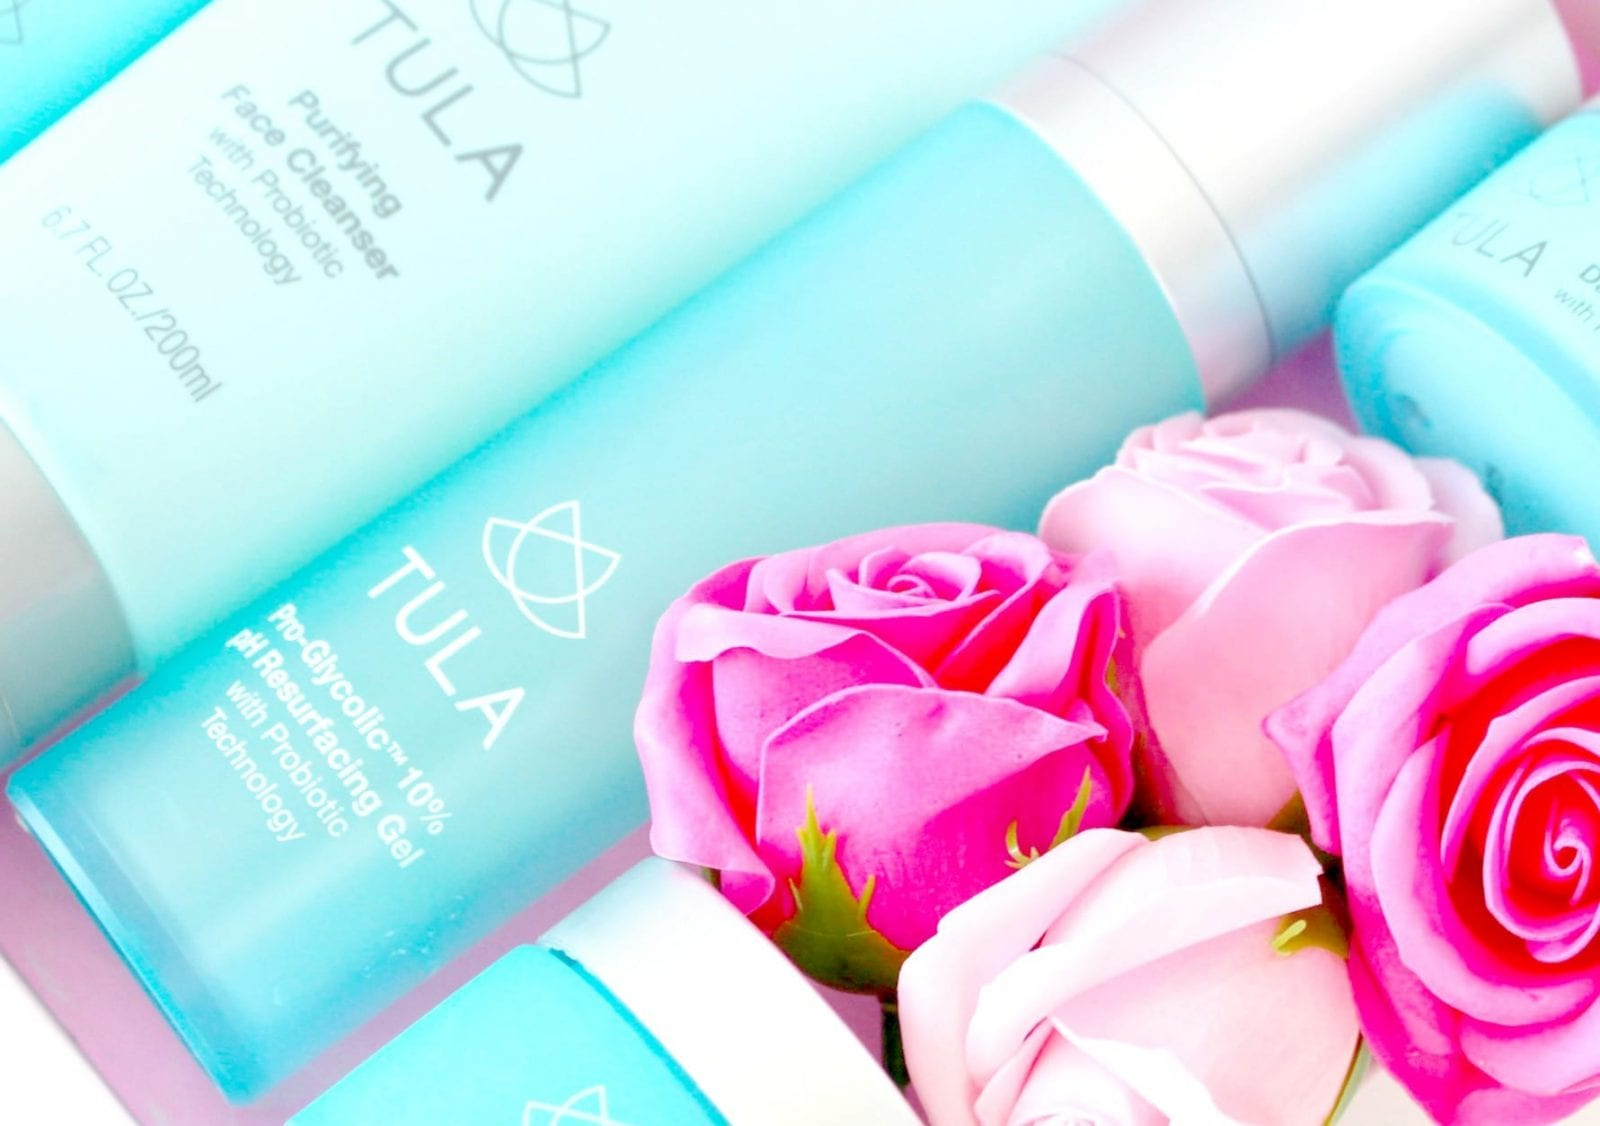 This is a close up of the Tula Skin Care cult favorites.